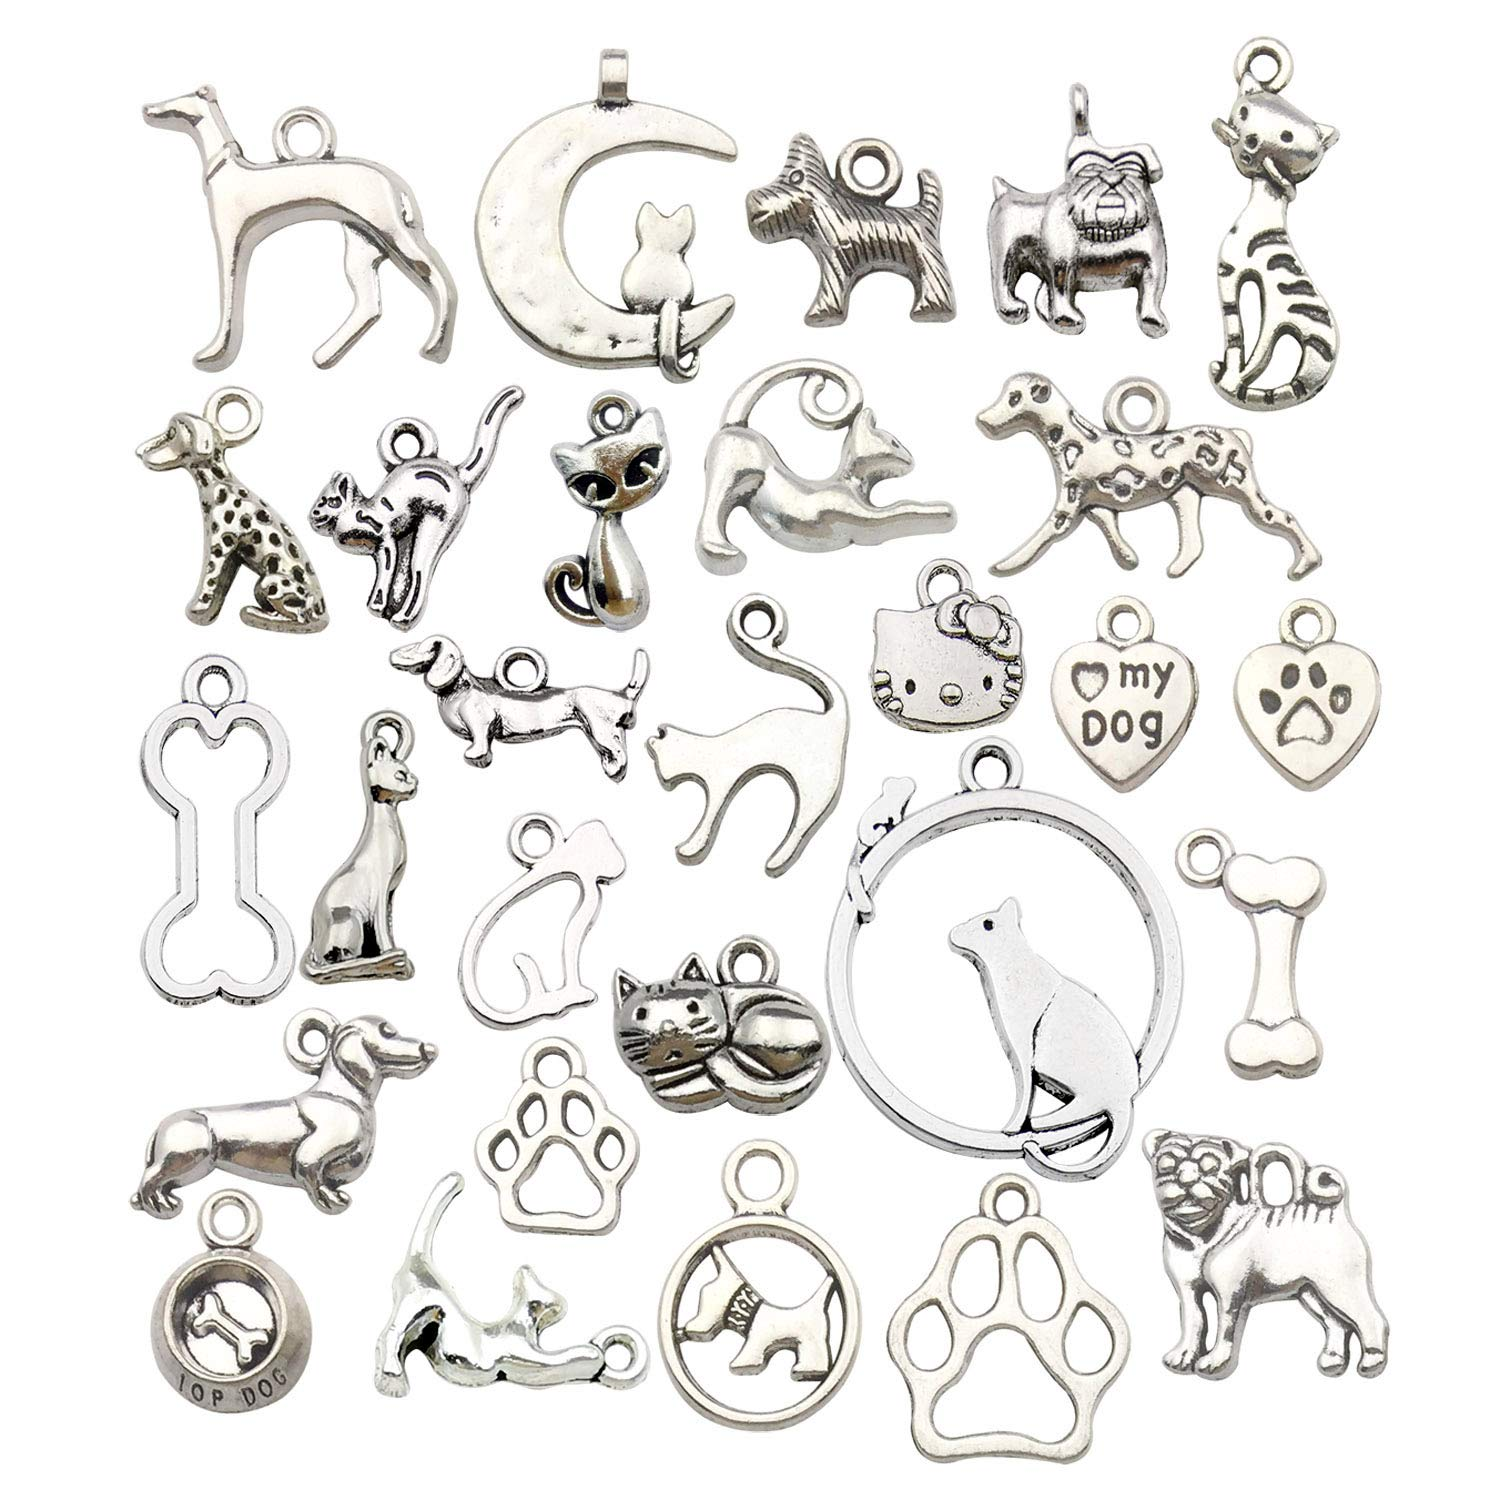 Youdiyla 70 pcs Lucky Charms Cute Puppy Pet Dog Animal Charm Bead for Jewelry Making Craft Supplies for DIY Necklace Bracelet Accessory WM152